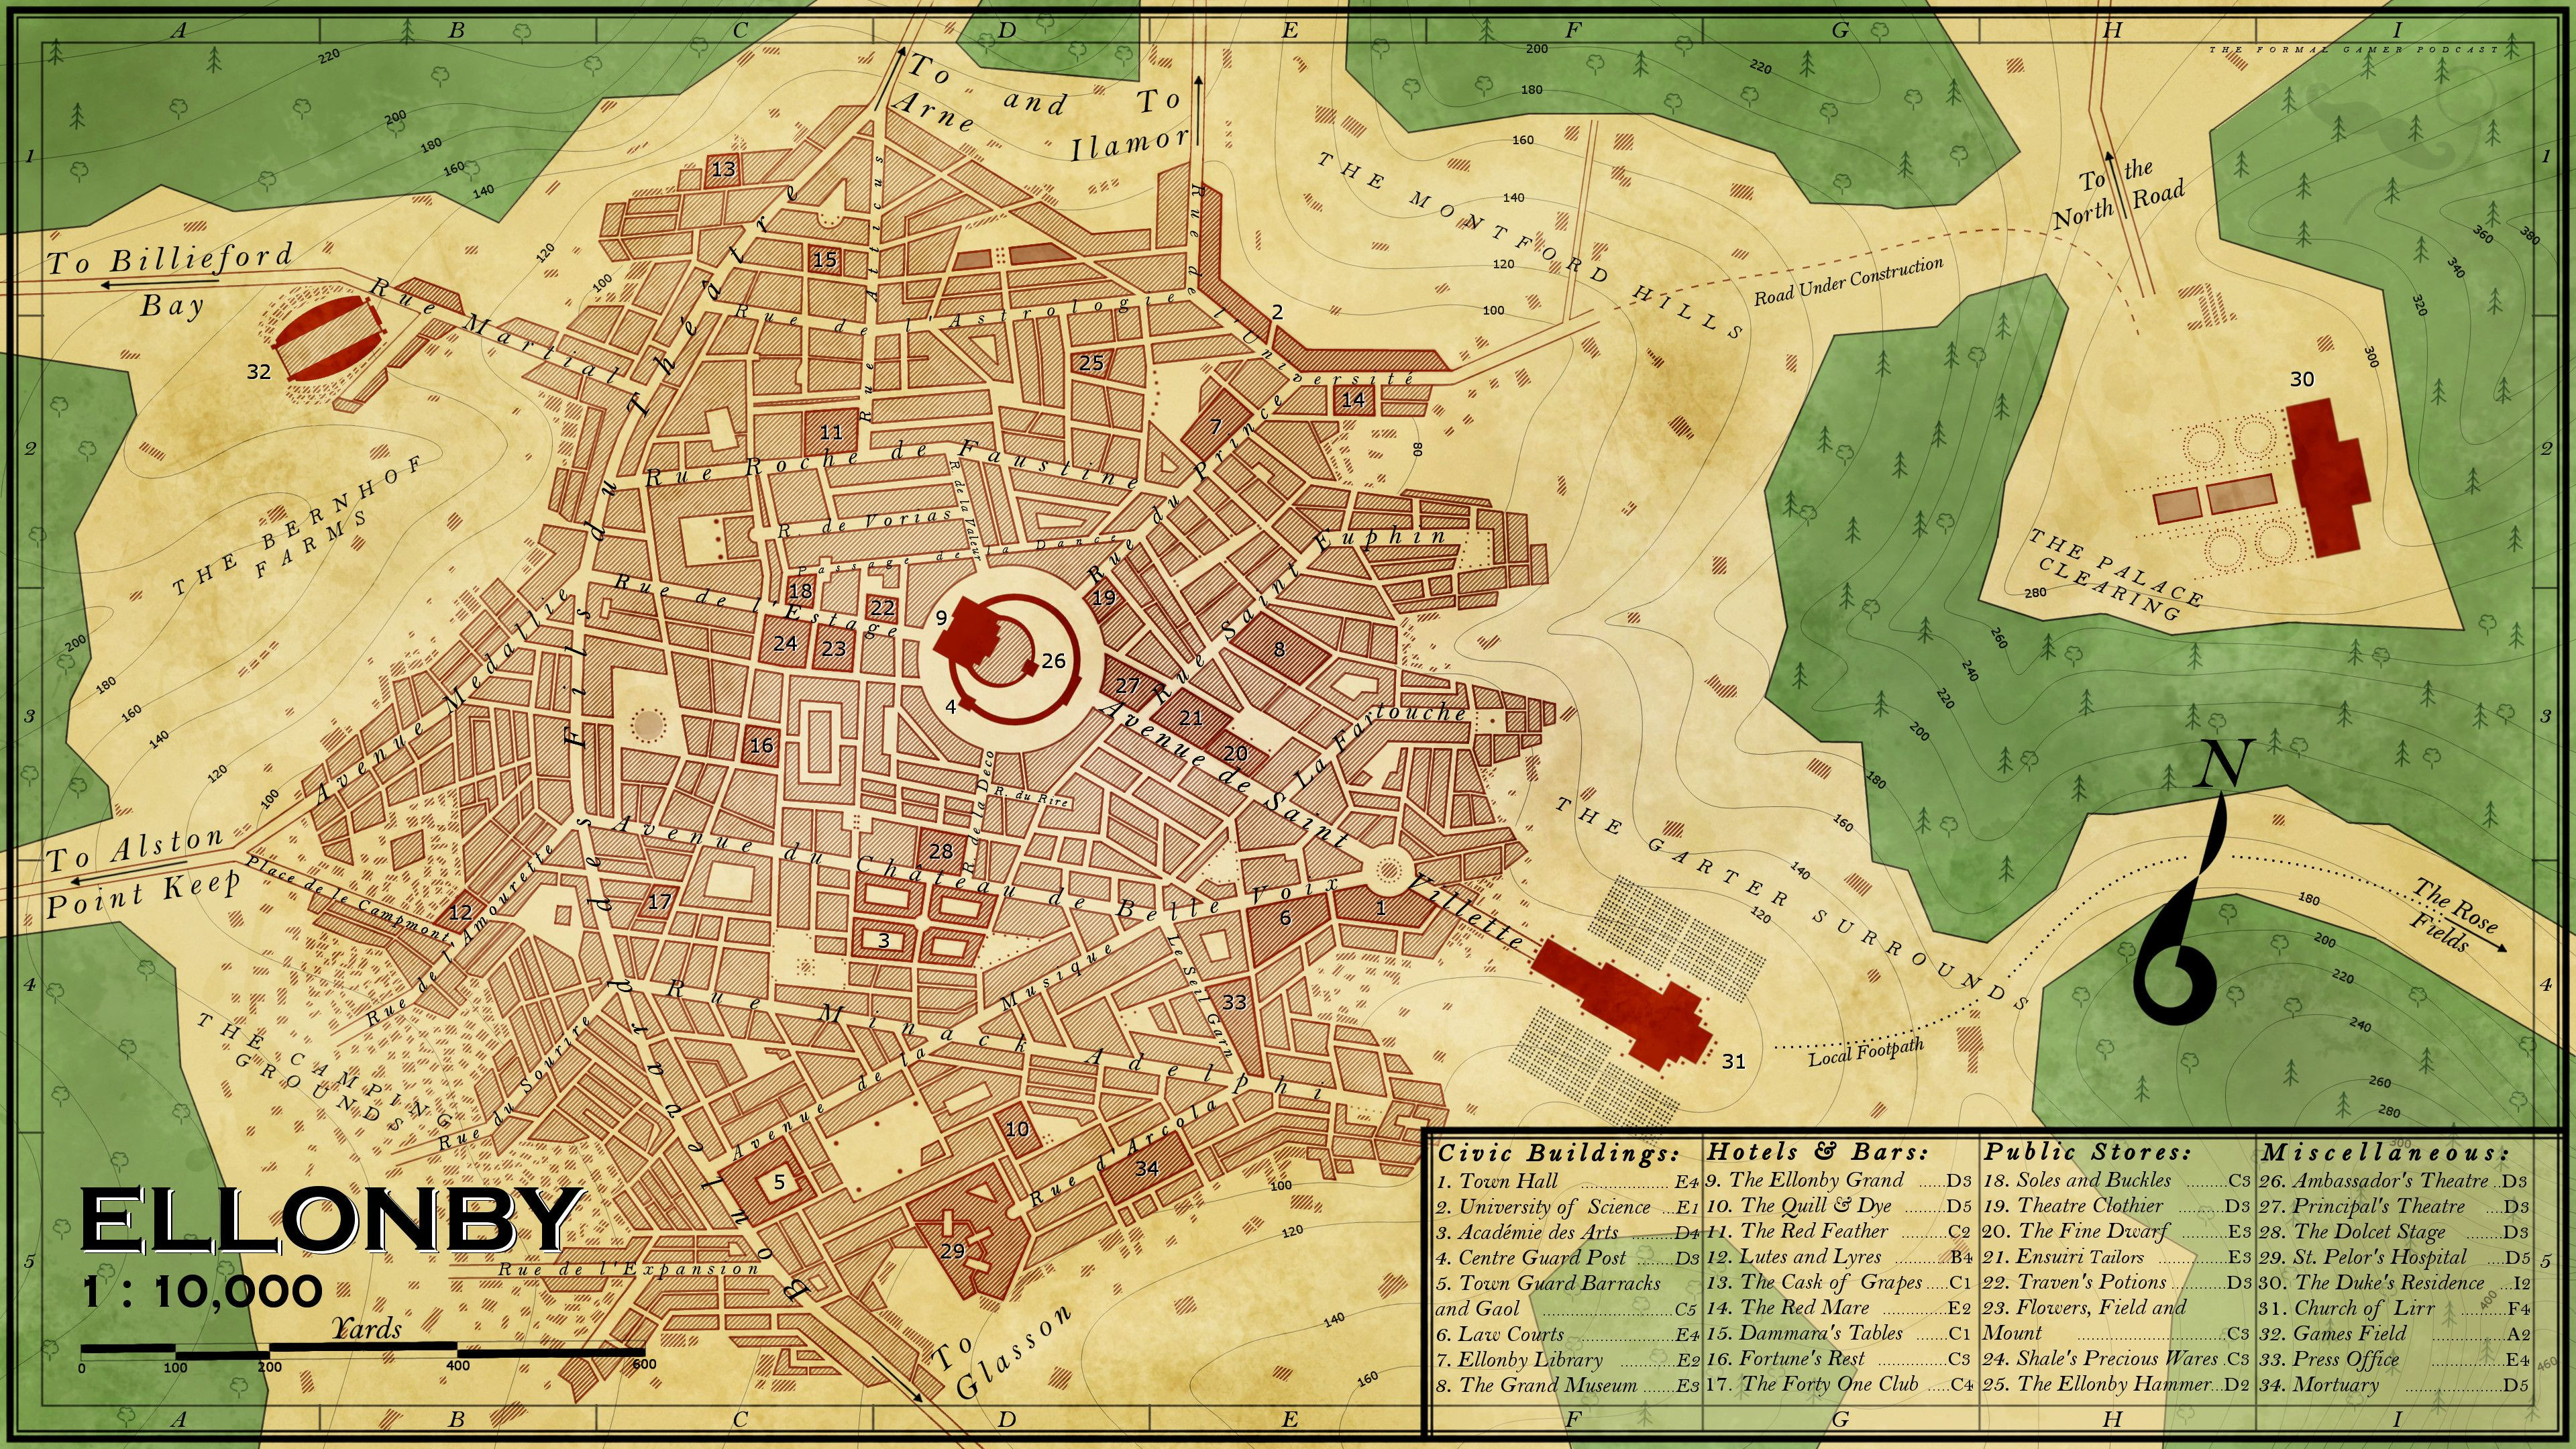 A website and forum for enthusiasts of fantasy maps mapmaking and cartography of all types We are a thriving munity of fantasy map makers that provide